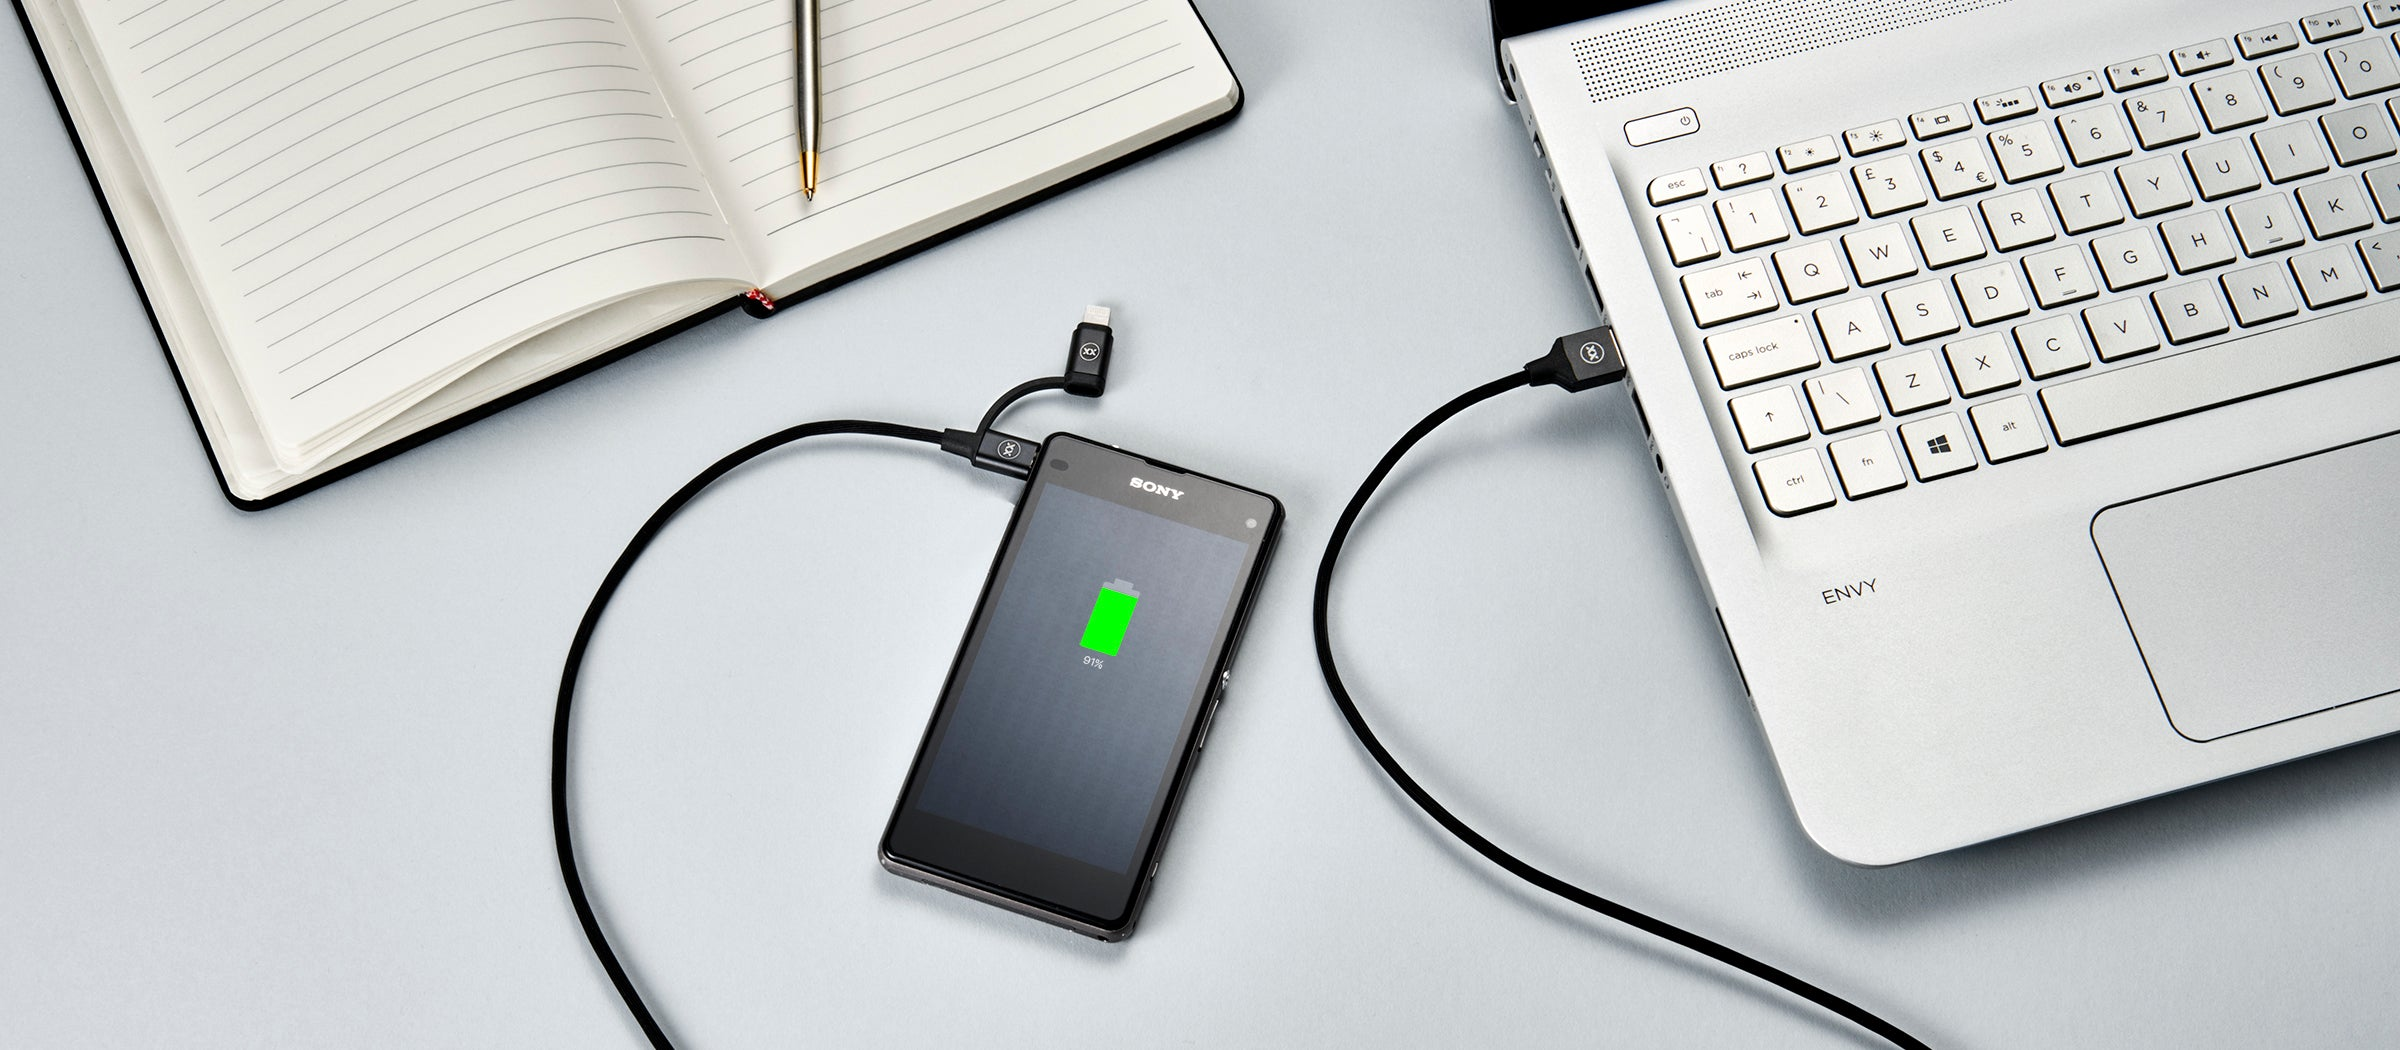 2 in 1 sync and charge micro usb and lightning cable